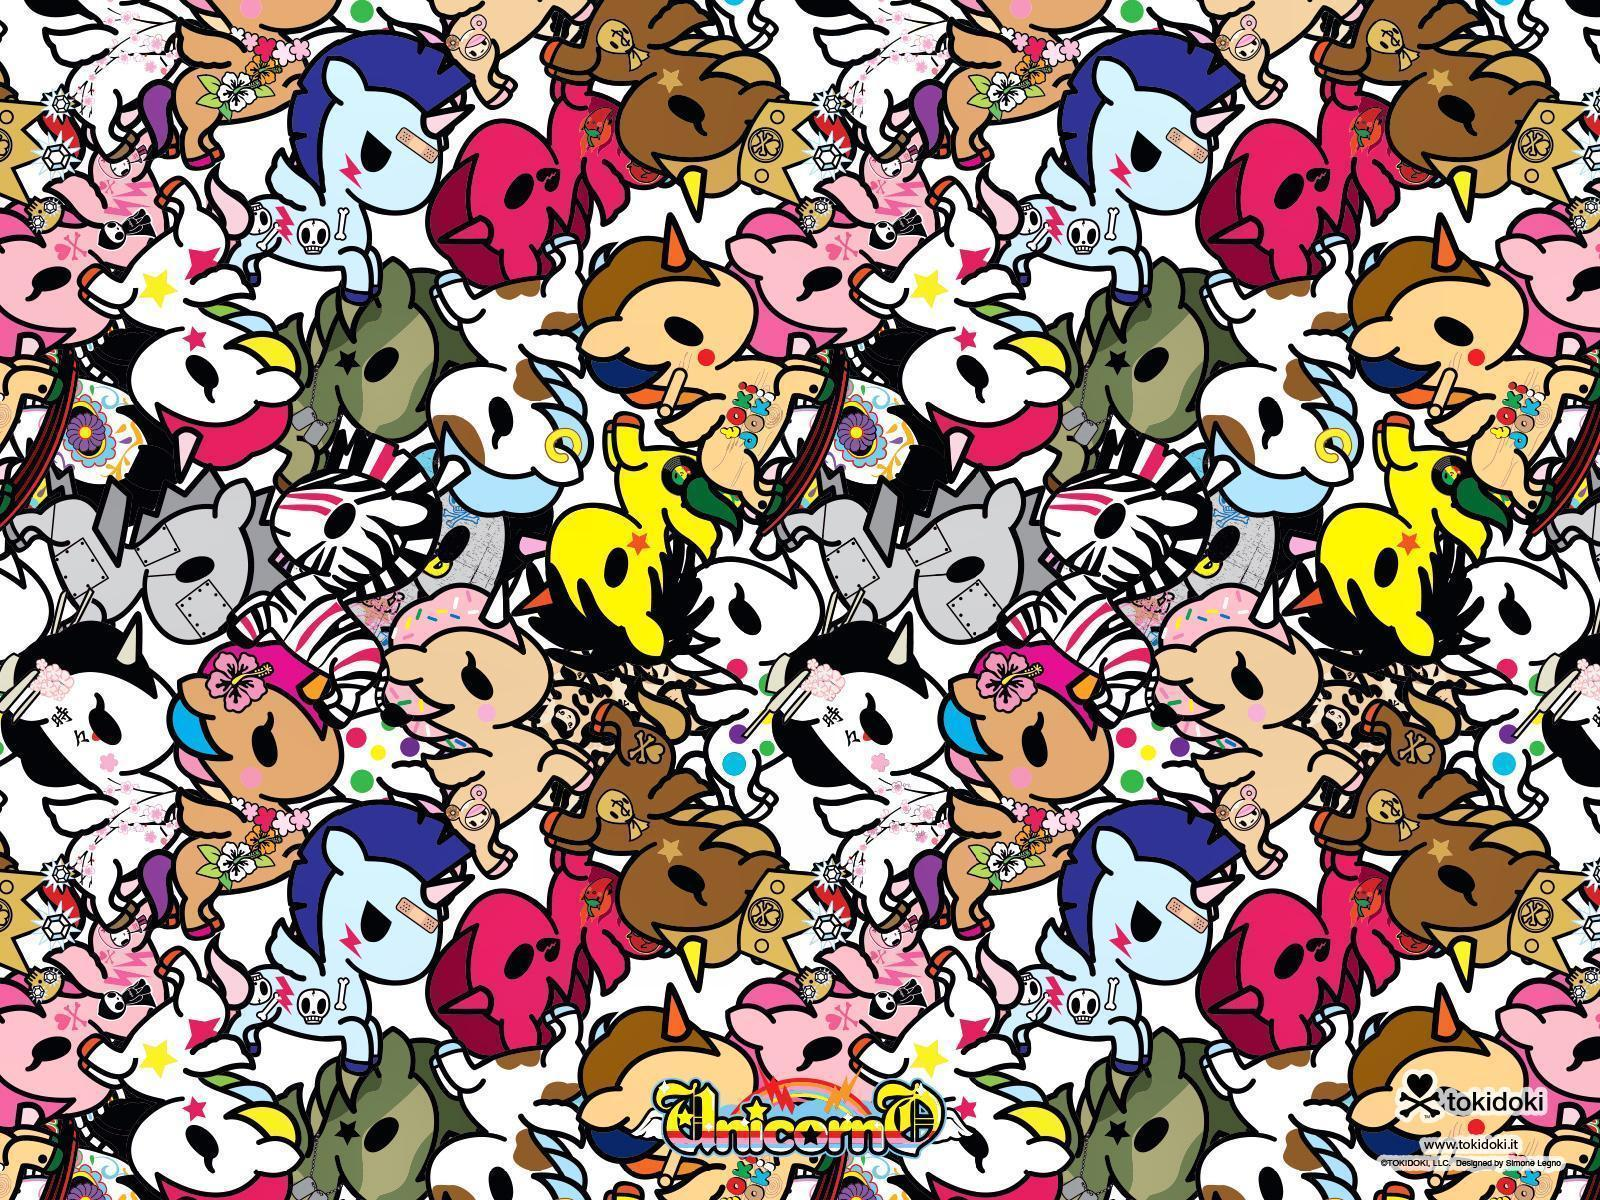 1600x1200 Tokidoki Desktop Wallpapers